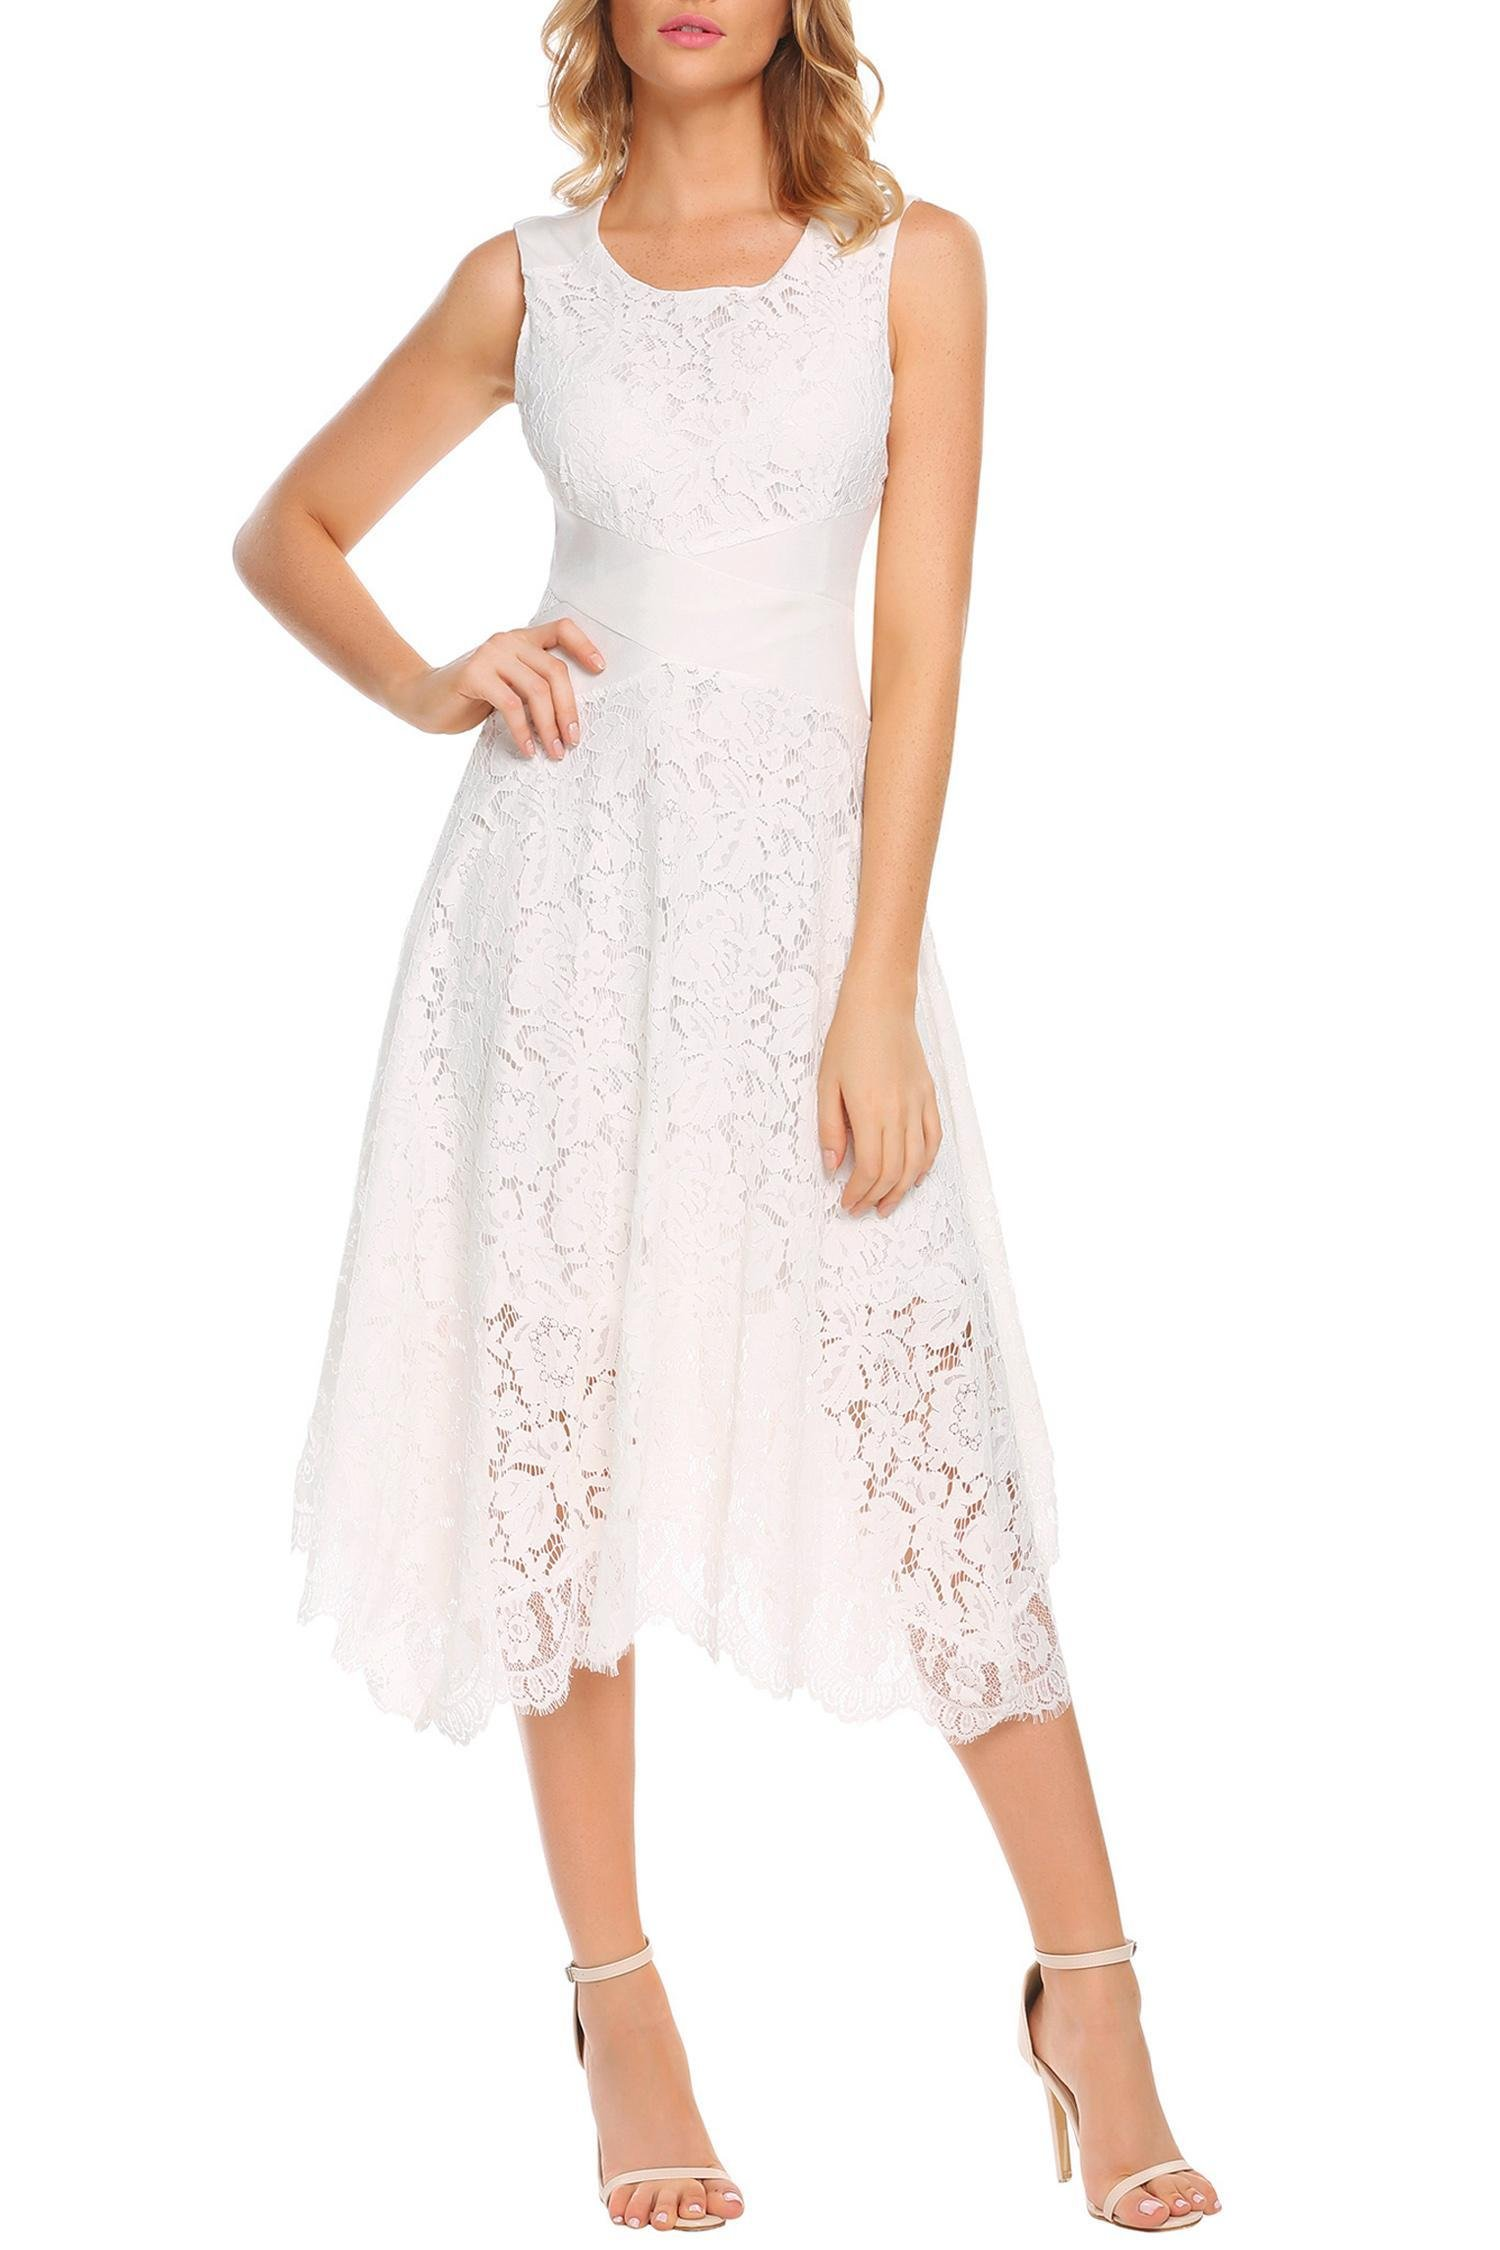 ANGVNS Women's Lace Dress Sleeveless Bodycon Cocktail Party Wedding Dresses White M